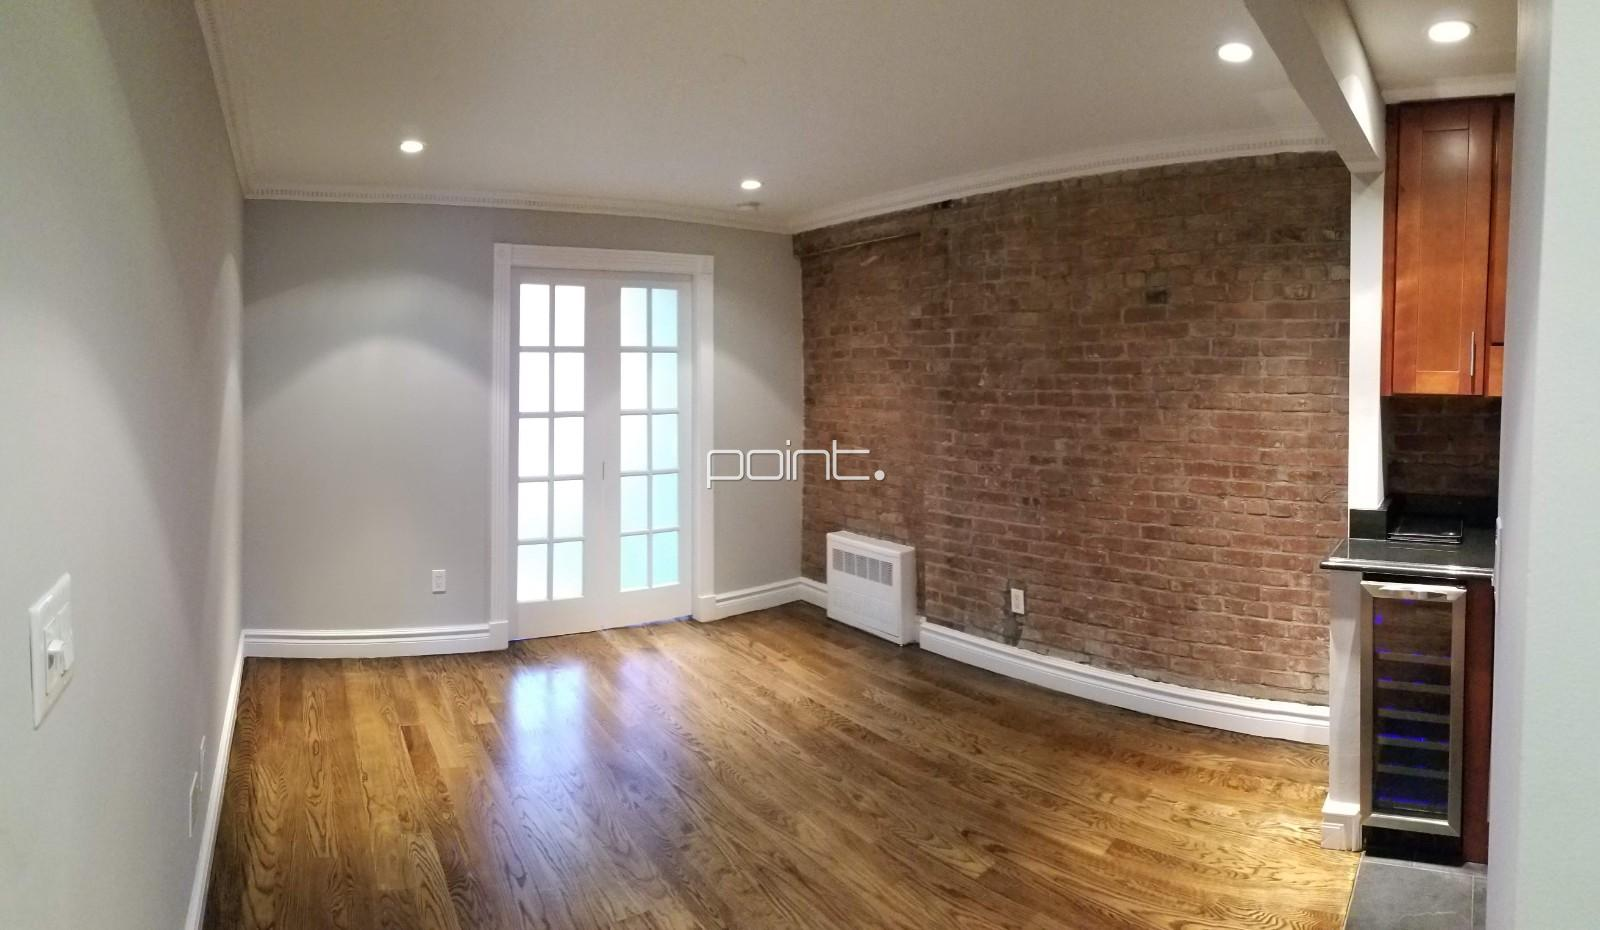 Avenue B New York Apartments East Village 3 Bedroom Apartment For Rent